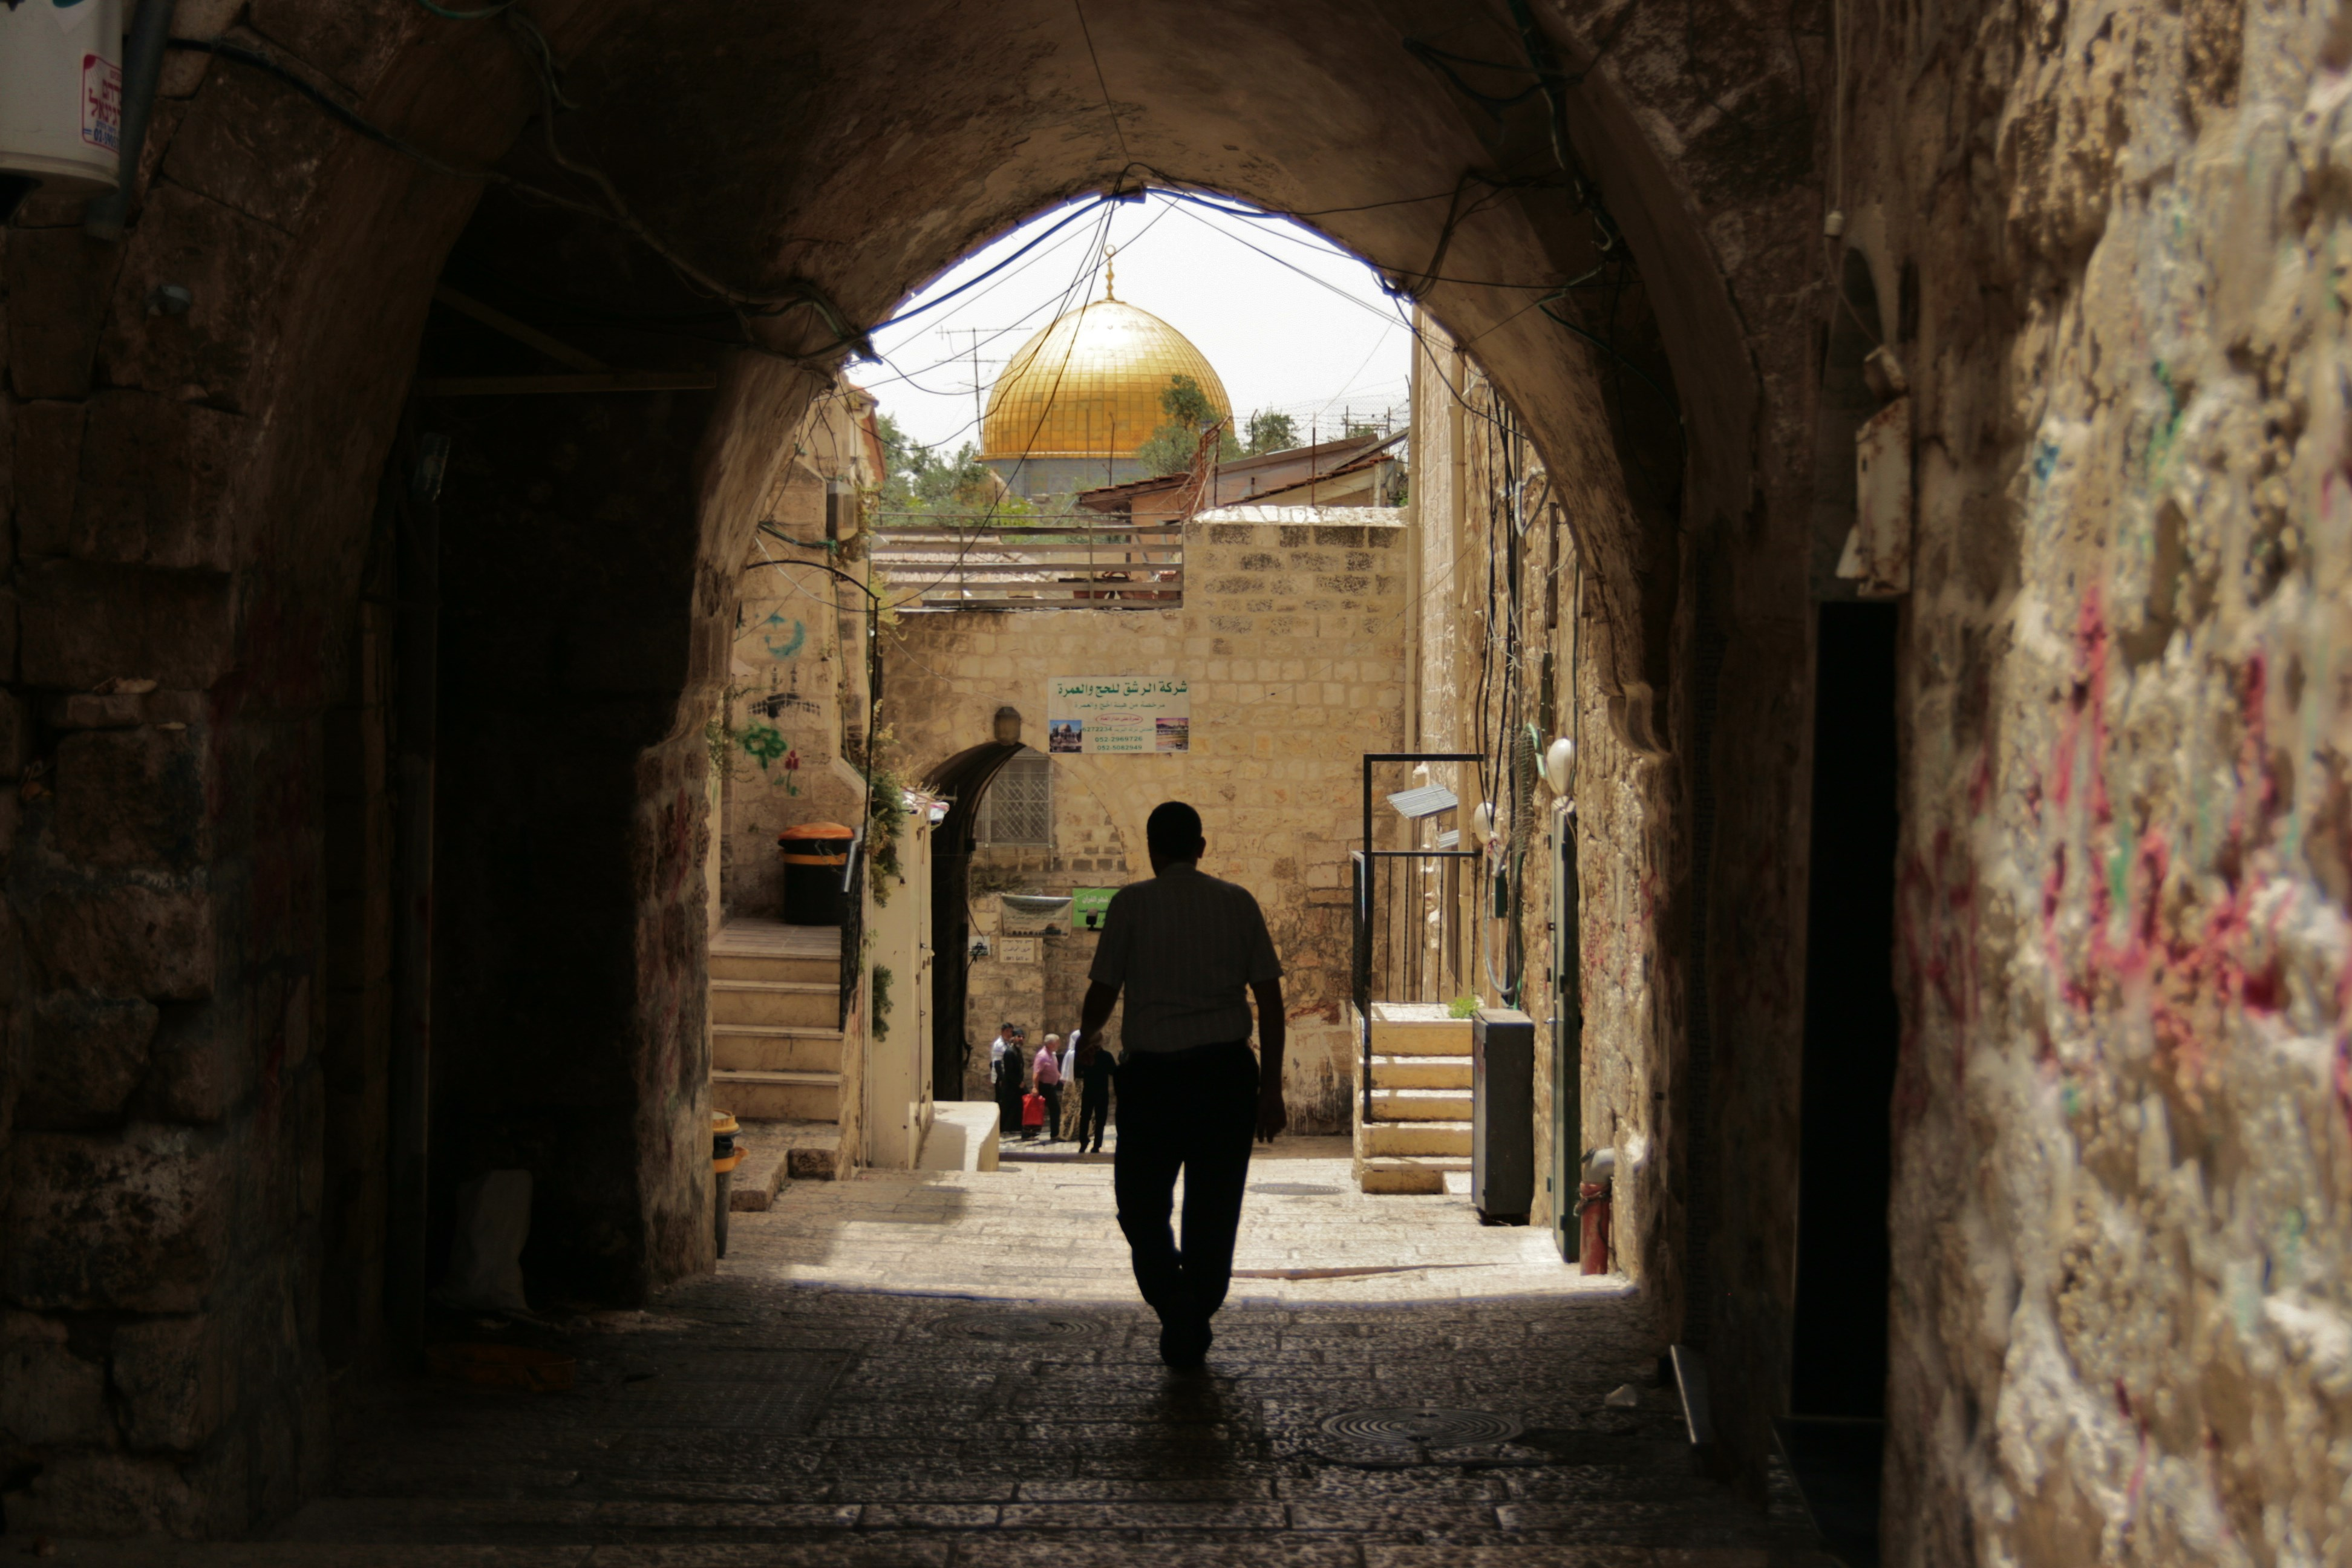 A person in shadow walking through into the light with the golden dome of a mosque shining in the sunlight